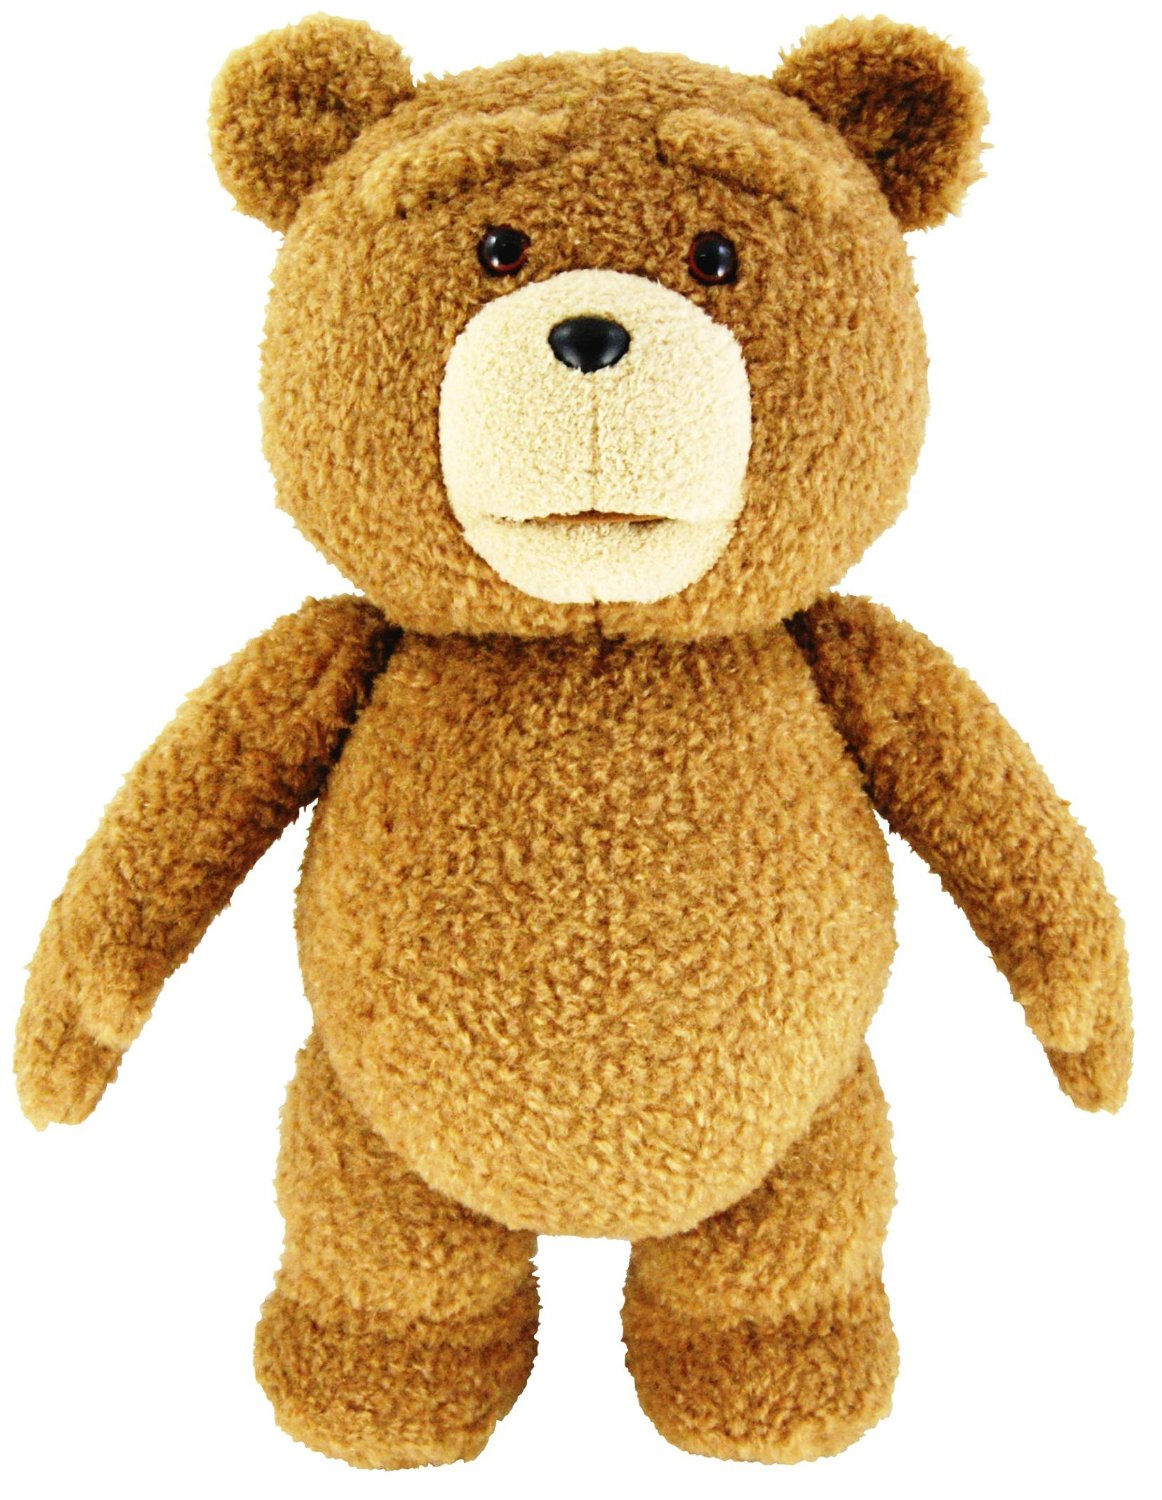 R-rated Talking Plush Teddy Bear – Ted